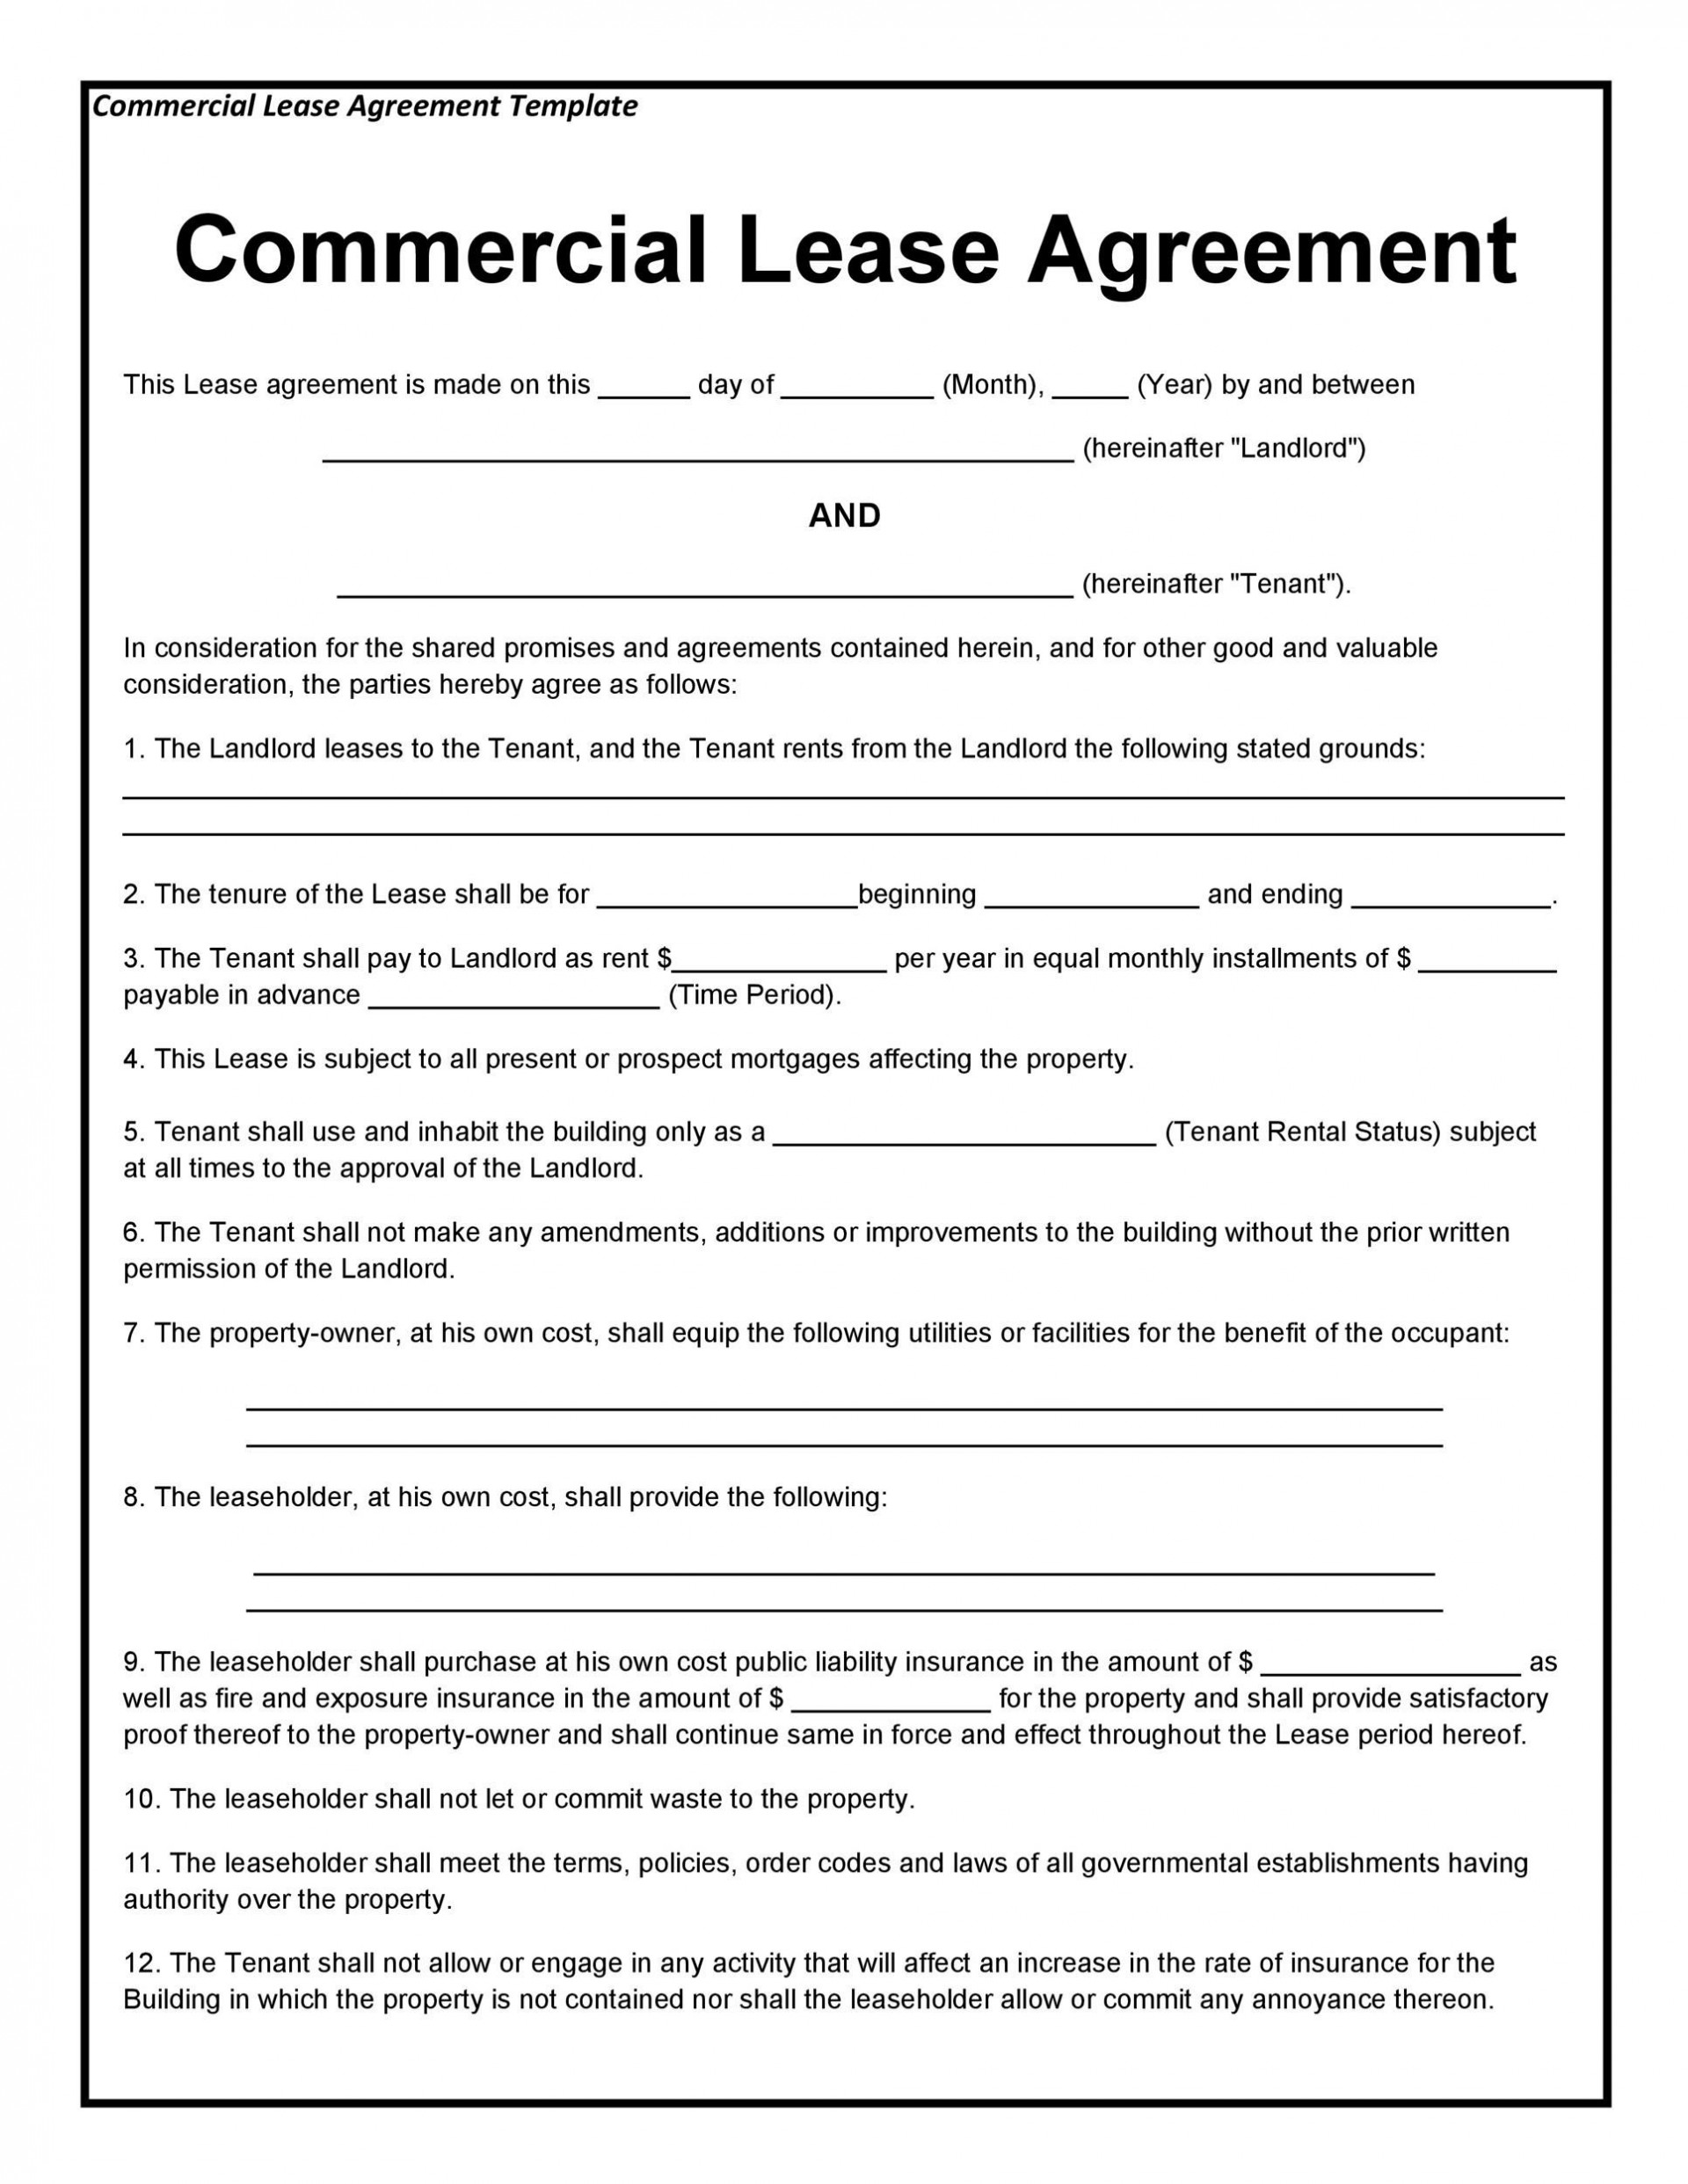 002 Fascinating Free Commercial Lease Agreement Template Australia Picture  Queensland Download1920